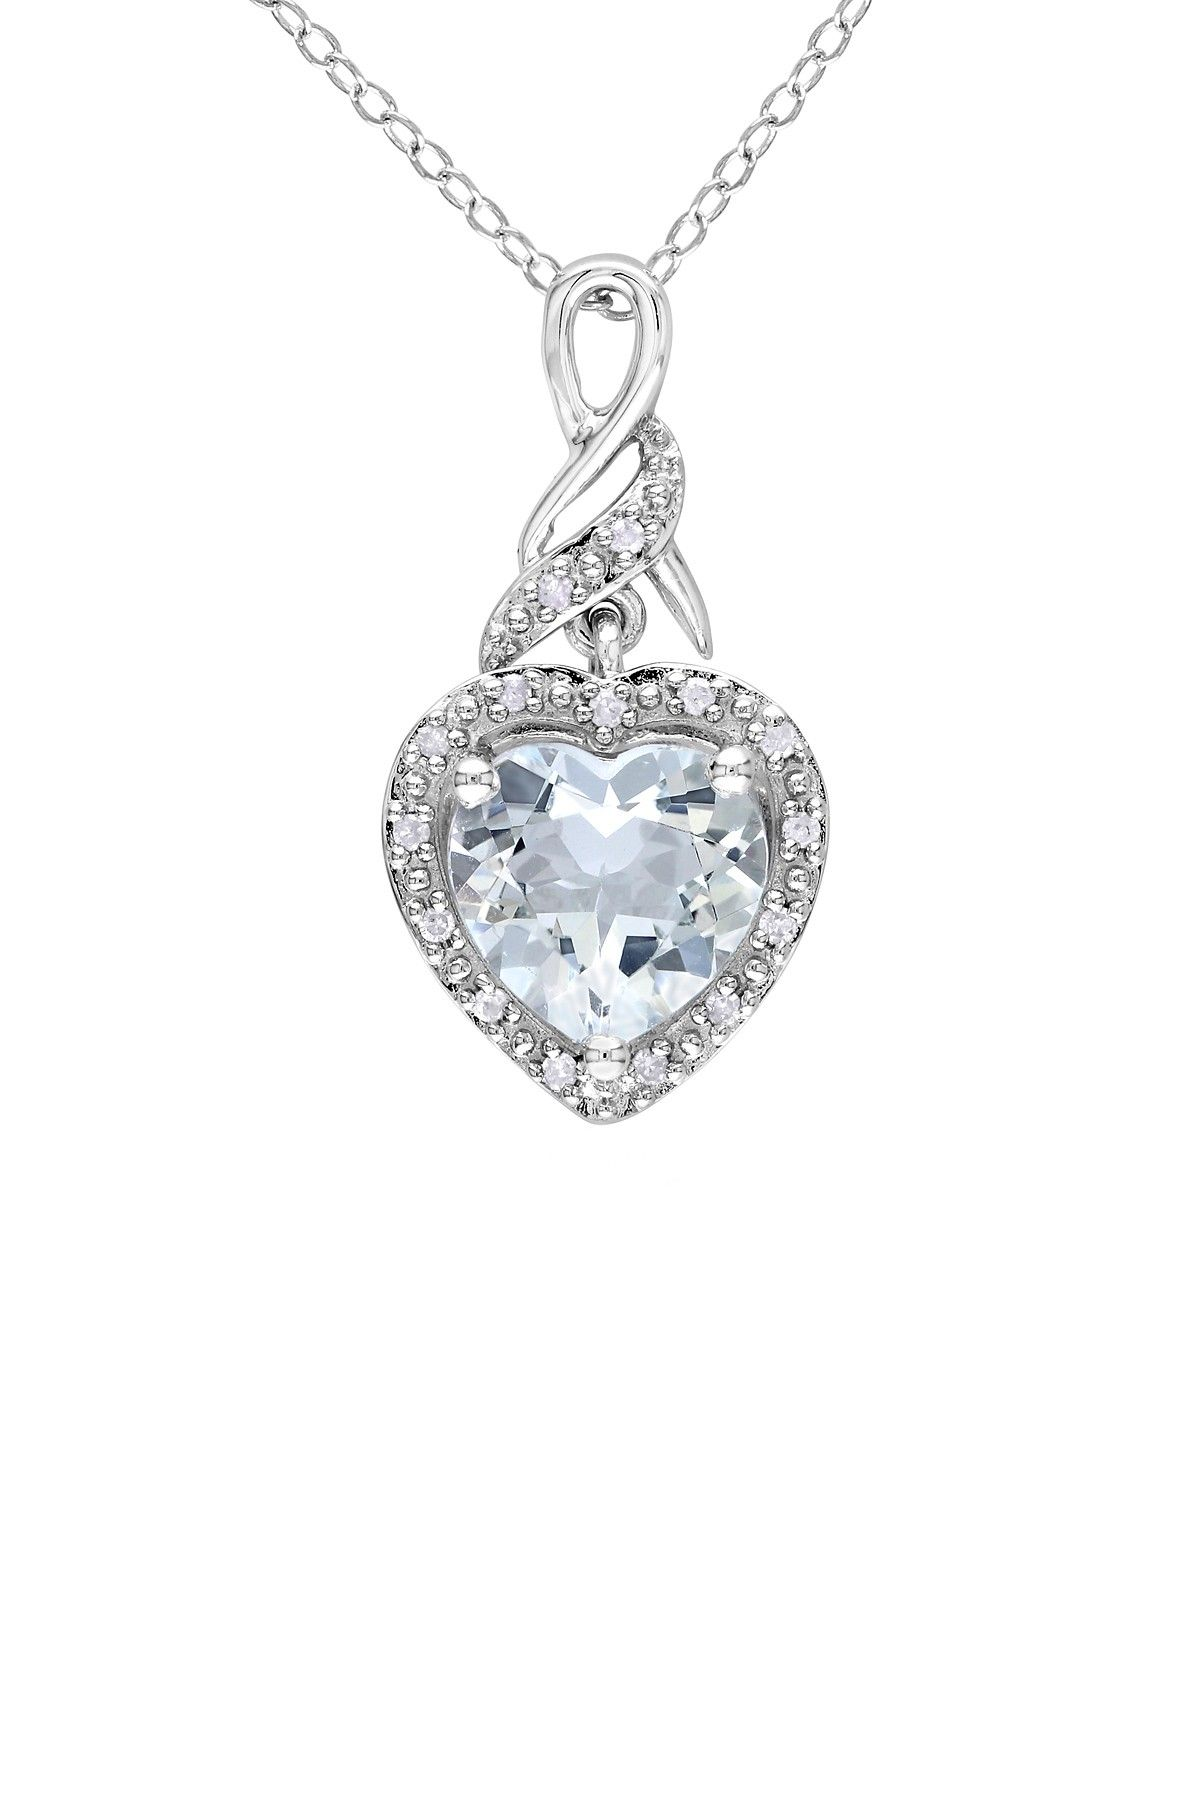 Sterling silver diamond halo aquamarine heart pendant necklace sterling silver diamond halo aquamarine heart pendant necklace 006 ctw fashion pinterest nunca es suficiente joya y joyeras aloadofball Gallery